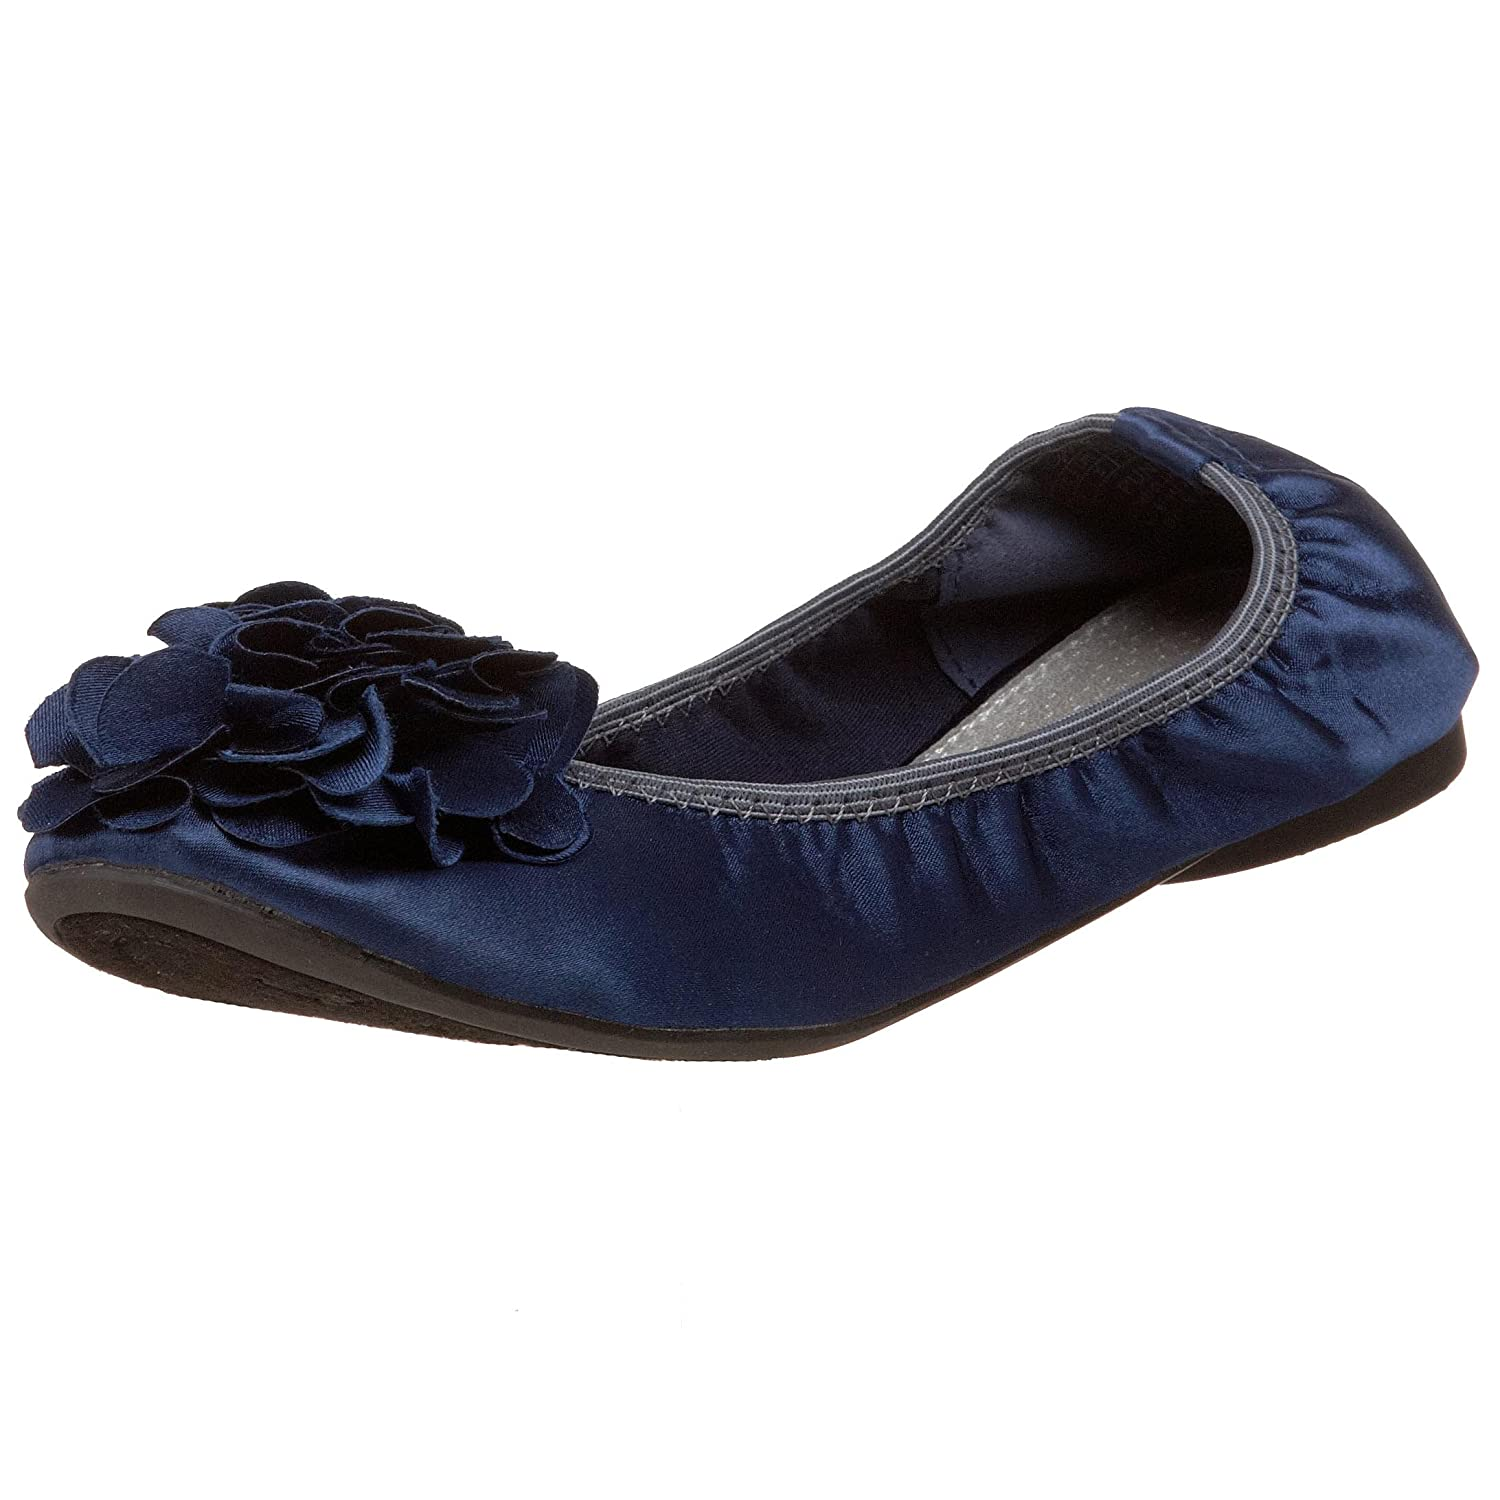 Wanted Shoes Women's Punk Ballet Flat B003PIO56Y 8.5 B(M) US|Navy